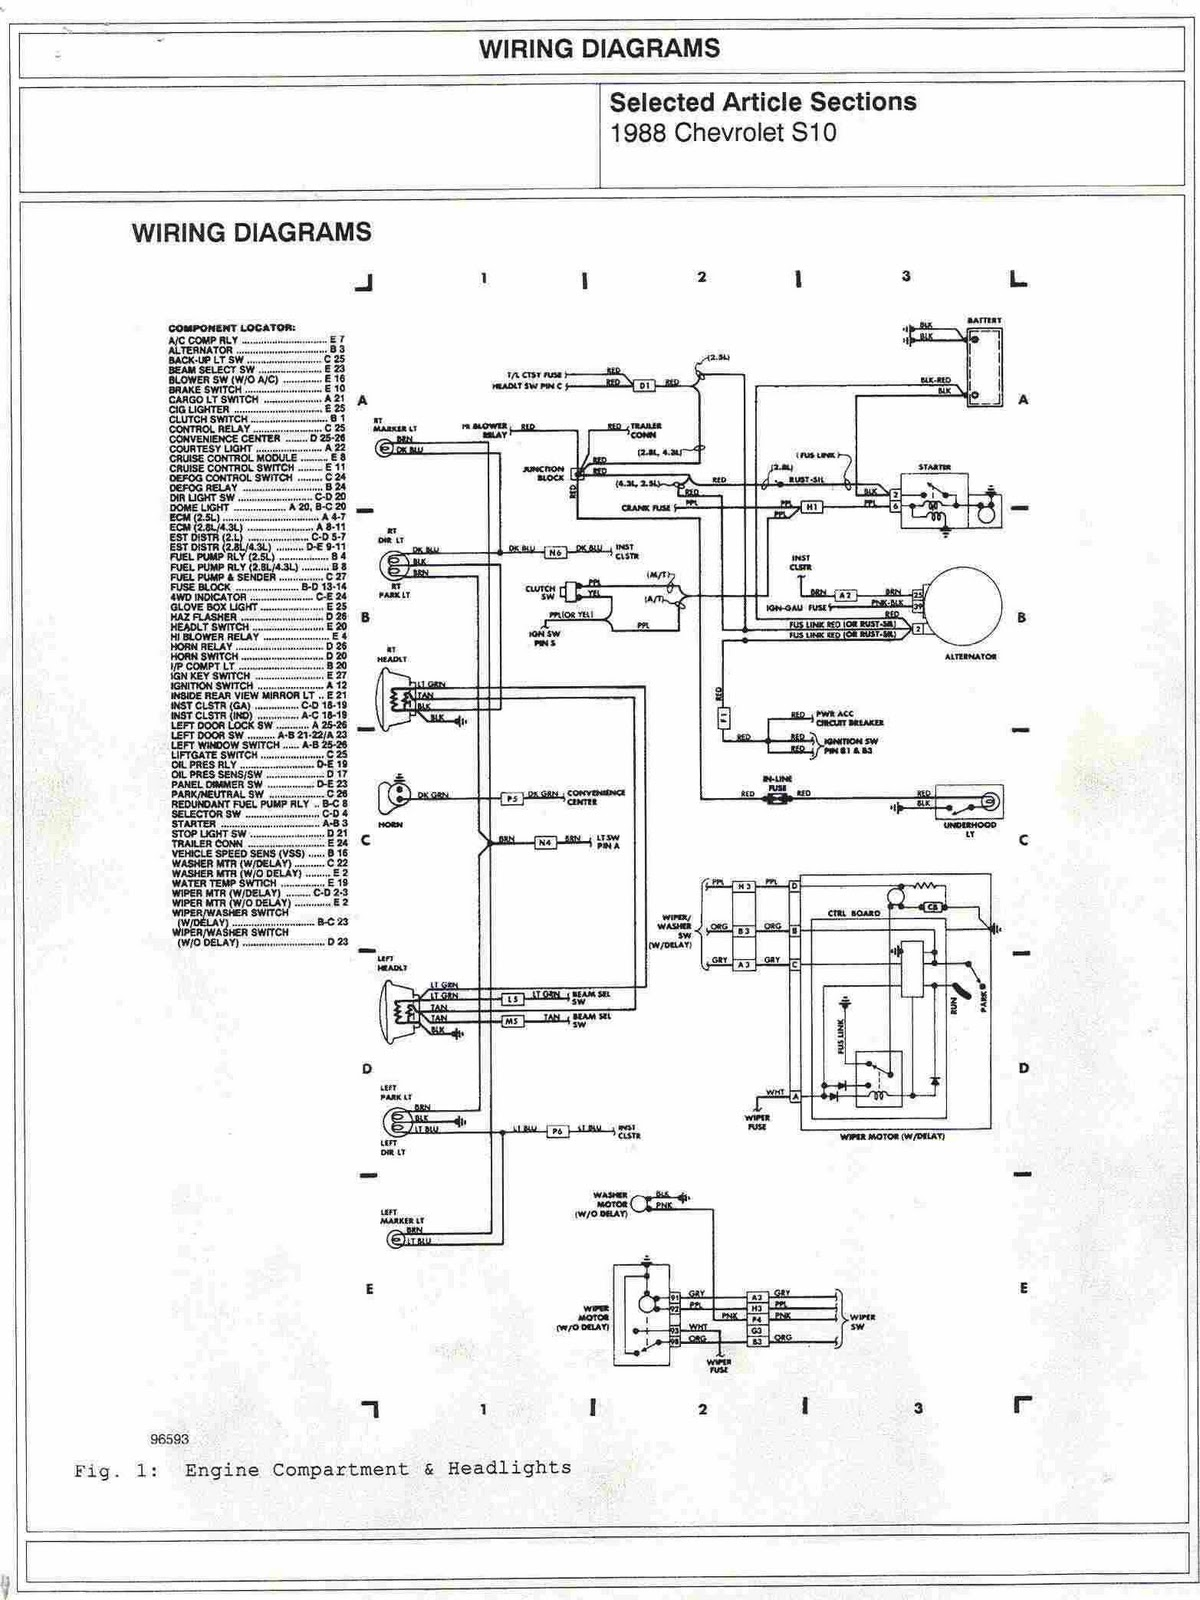 1988+Chevrolet+S10+Engine+Compartment+and+Headlights+Wiring+Diagrams 85 chevy s10 wiring diagram wiring diagram simonand 95 chevrolet wiring diagram at soozxer.org